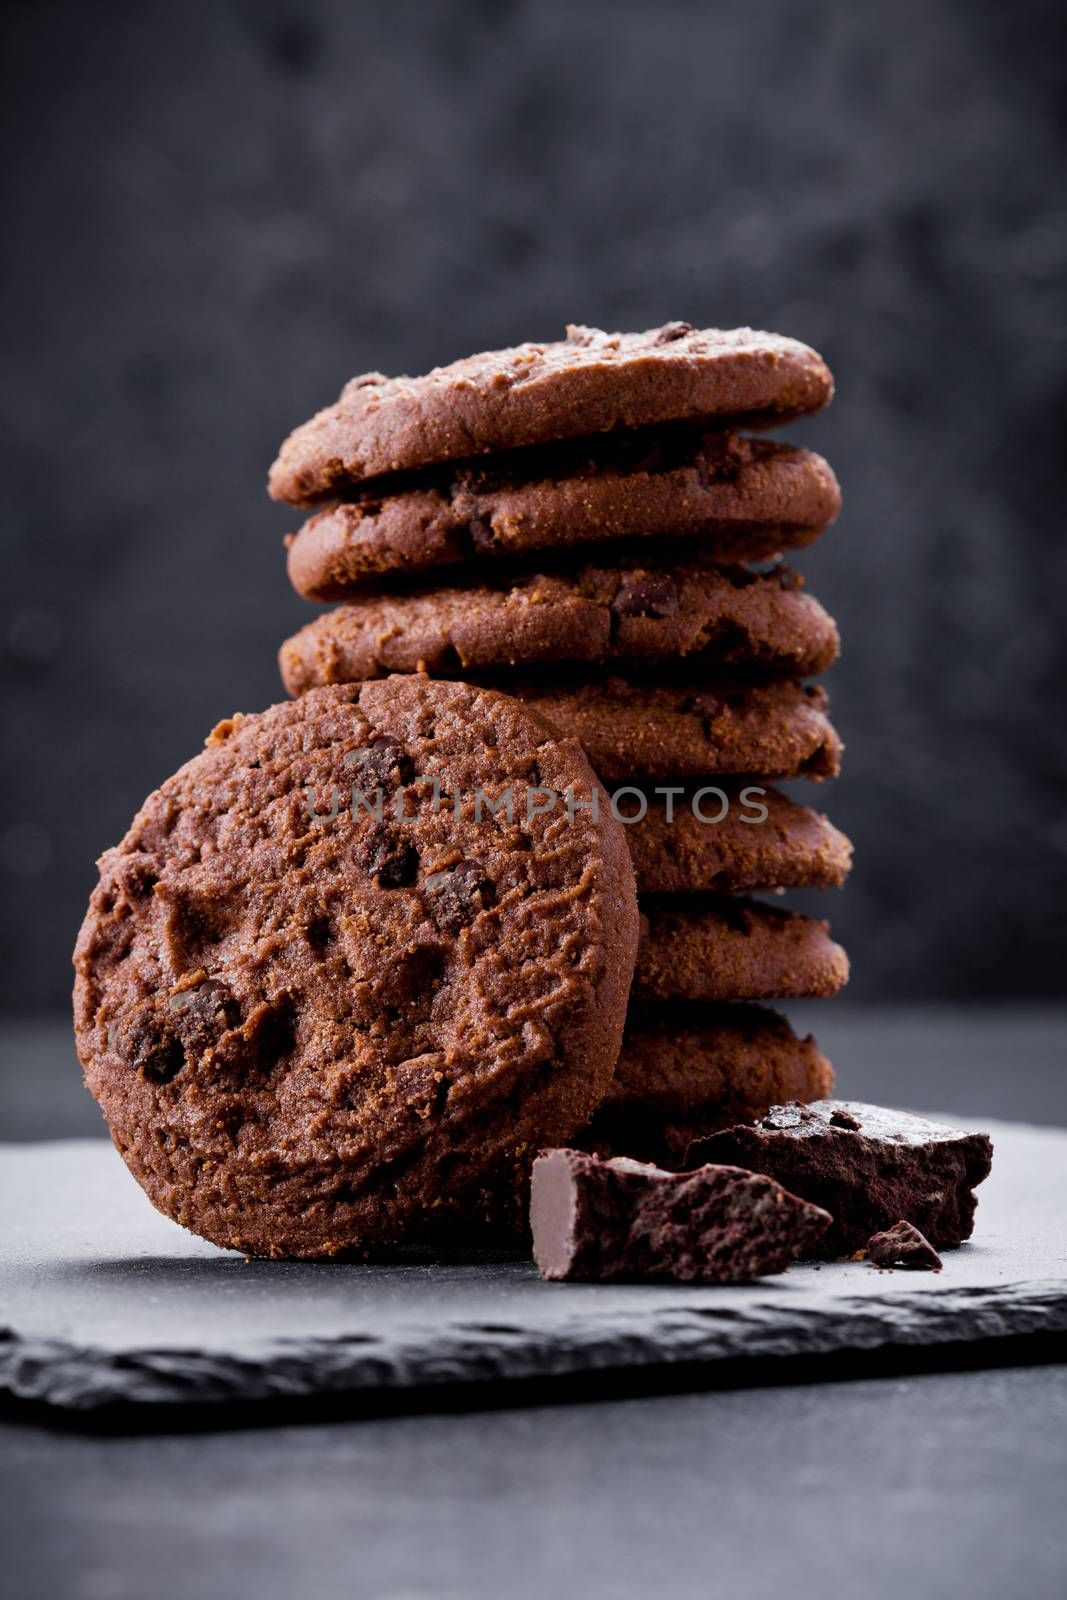 Stack of homemade chocolate and chocolate chips cookies